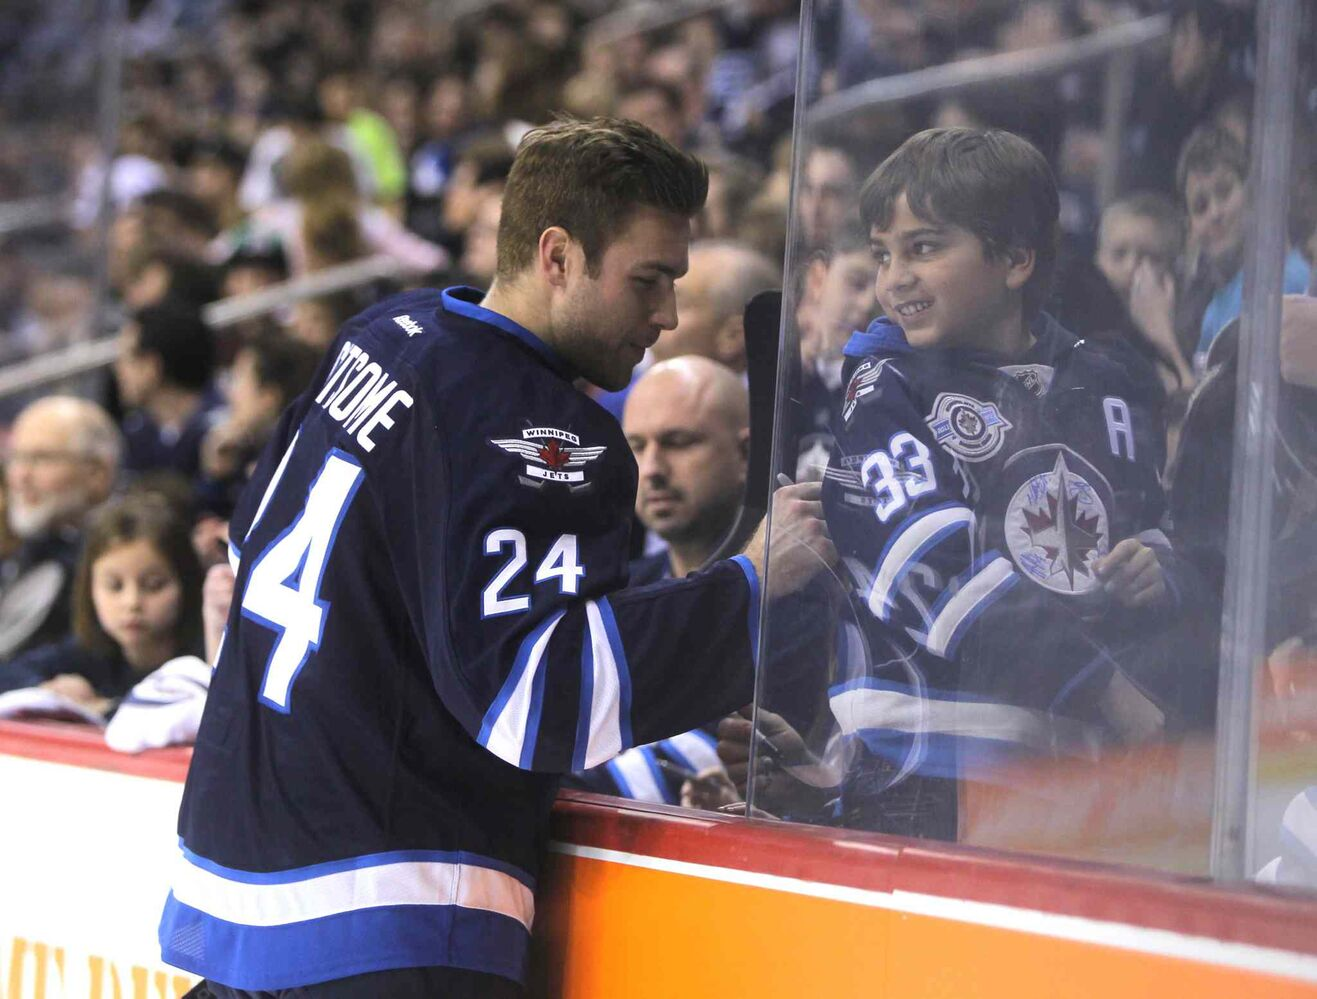 Winnipeg Jets defenceman Grant Clitsome signs a child's jersey. He doesn't seem upset that it's a Dustin Byfuglien jersey. (Boris Minkevich / Winnipeg Free Press)